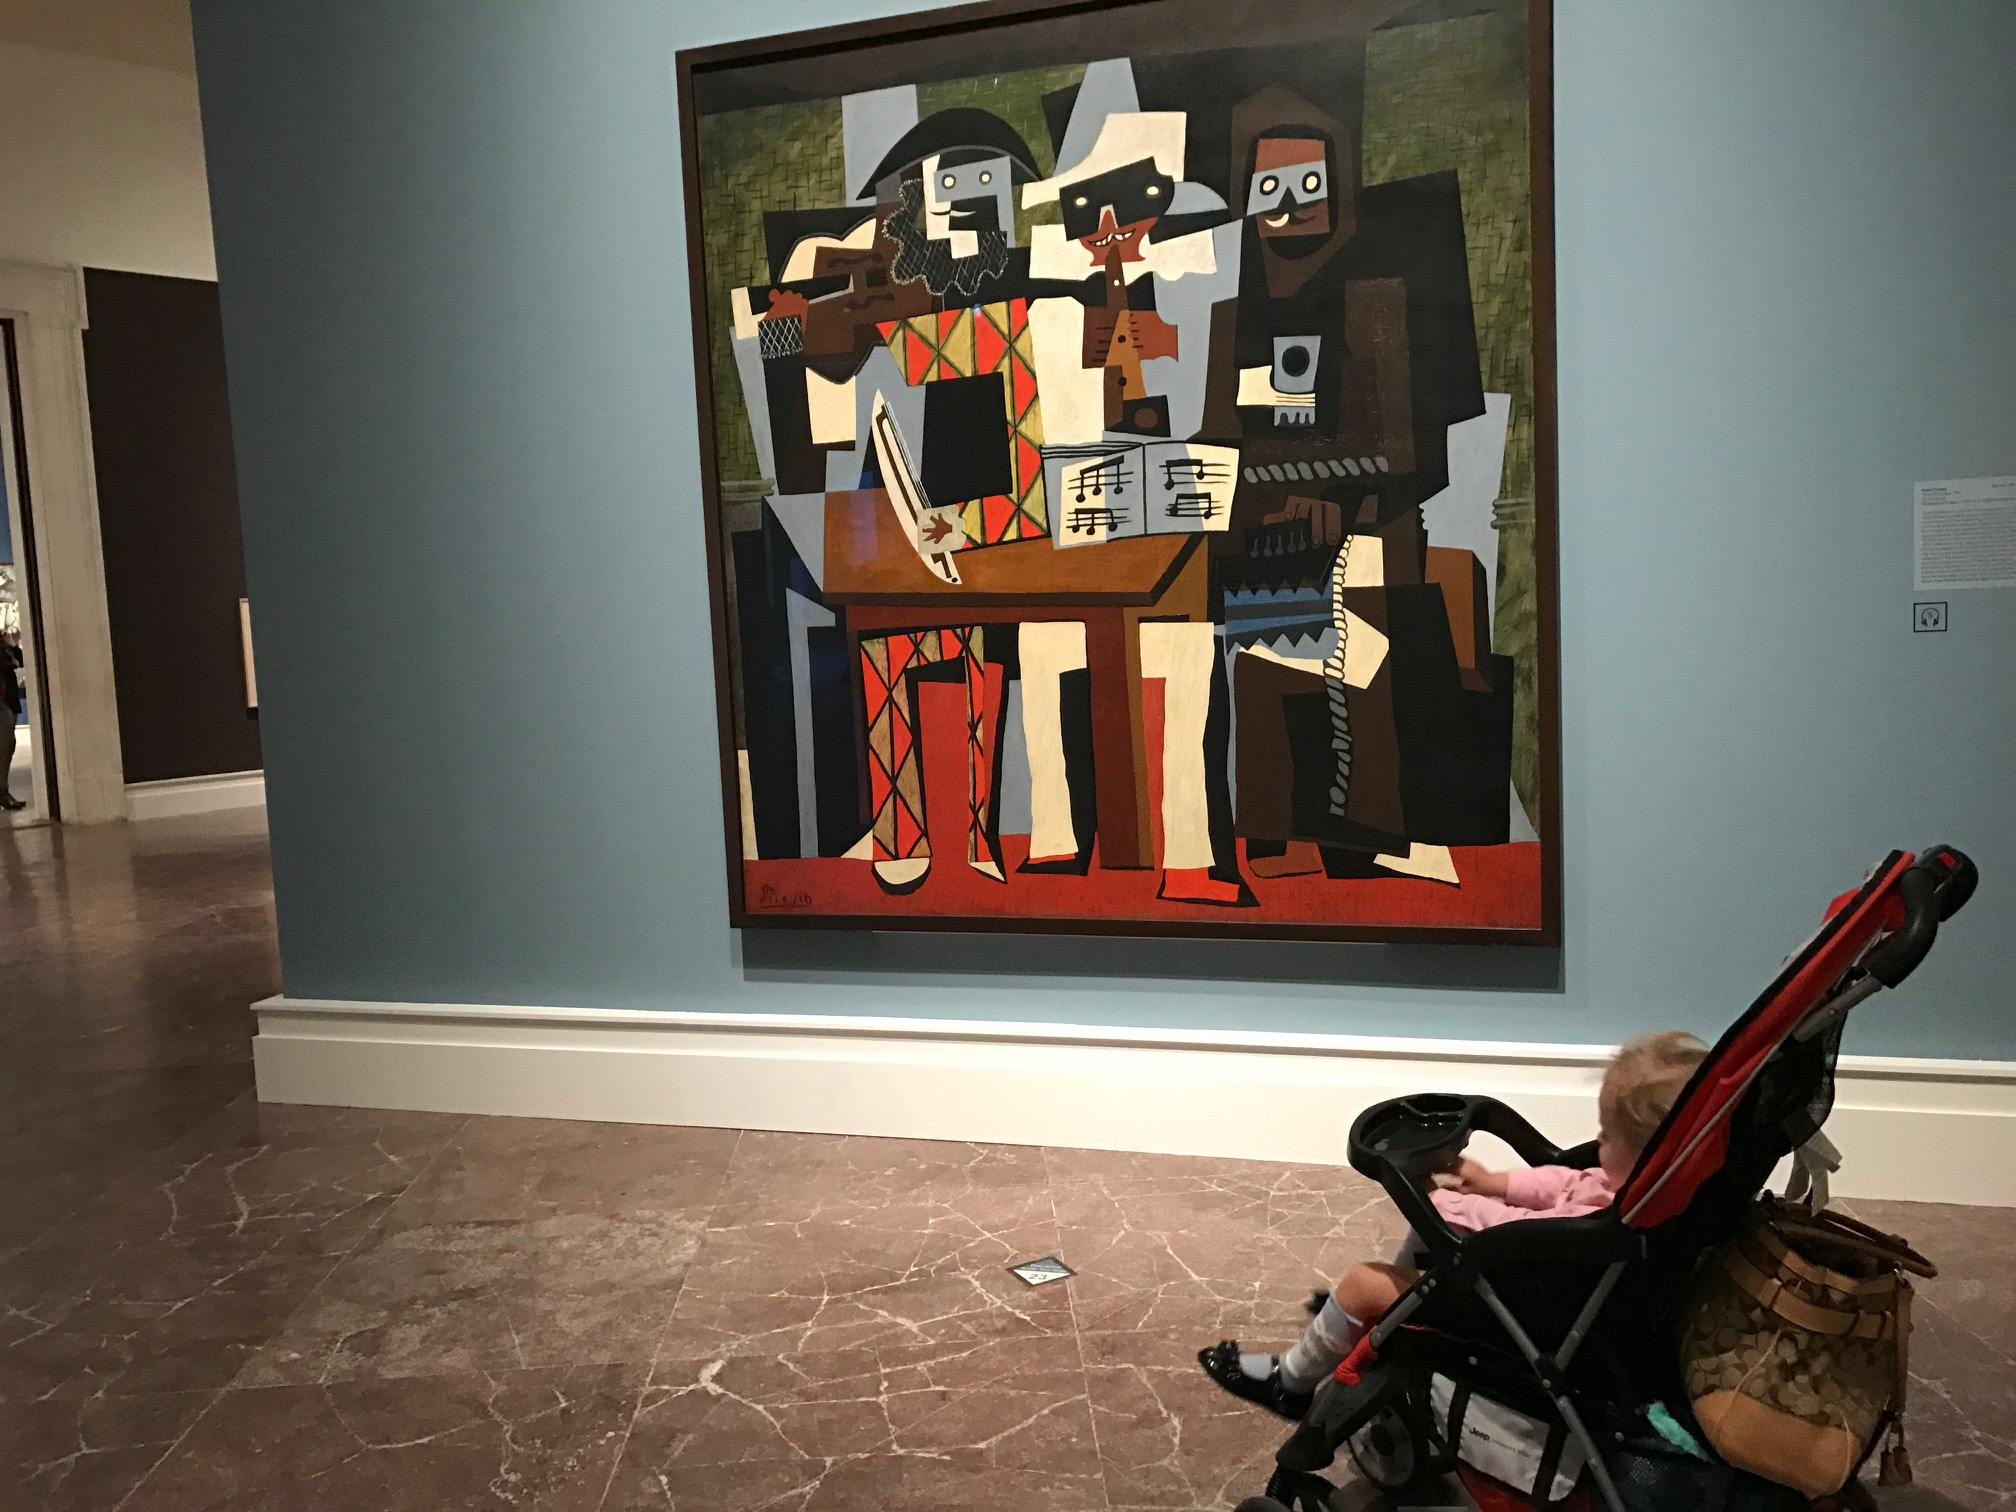 The art is priceless and so is the experience with your baby when you take a stroller tour at the Albright-Knox Art Gallery. (Mary Friona-Celani/Special to The News)